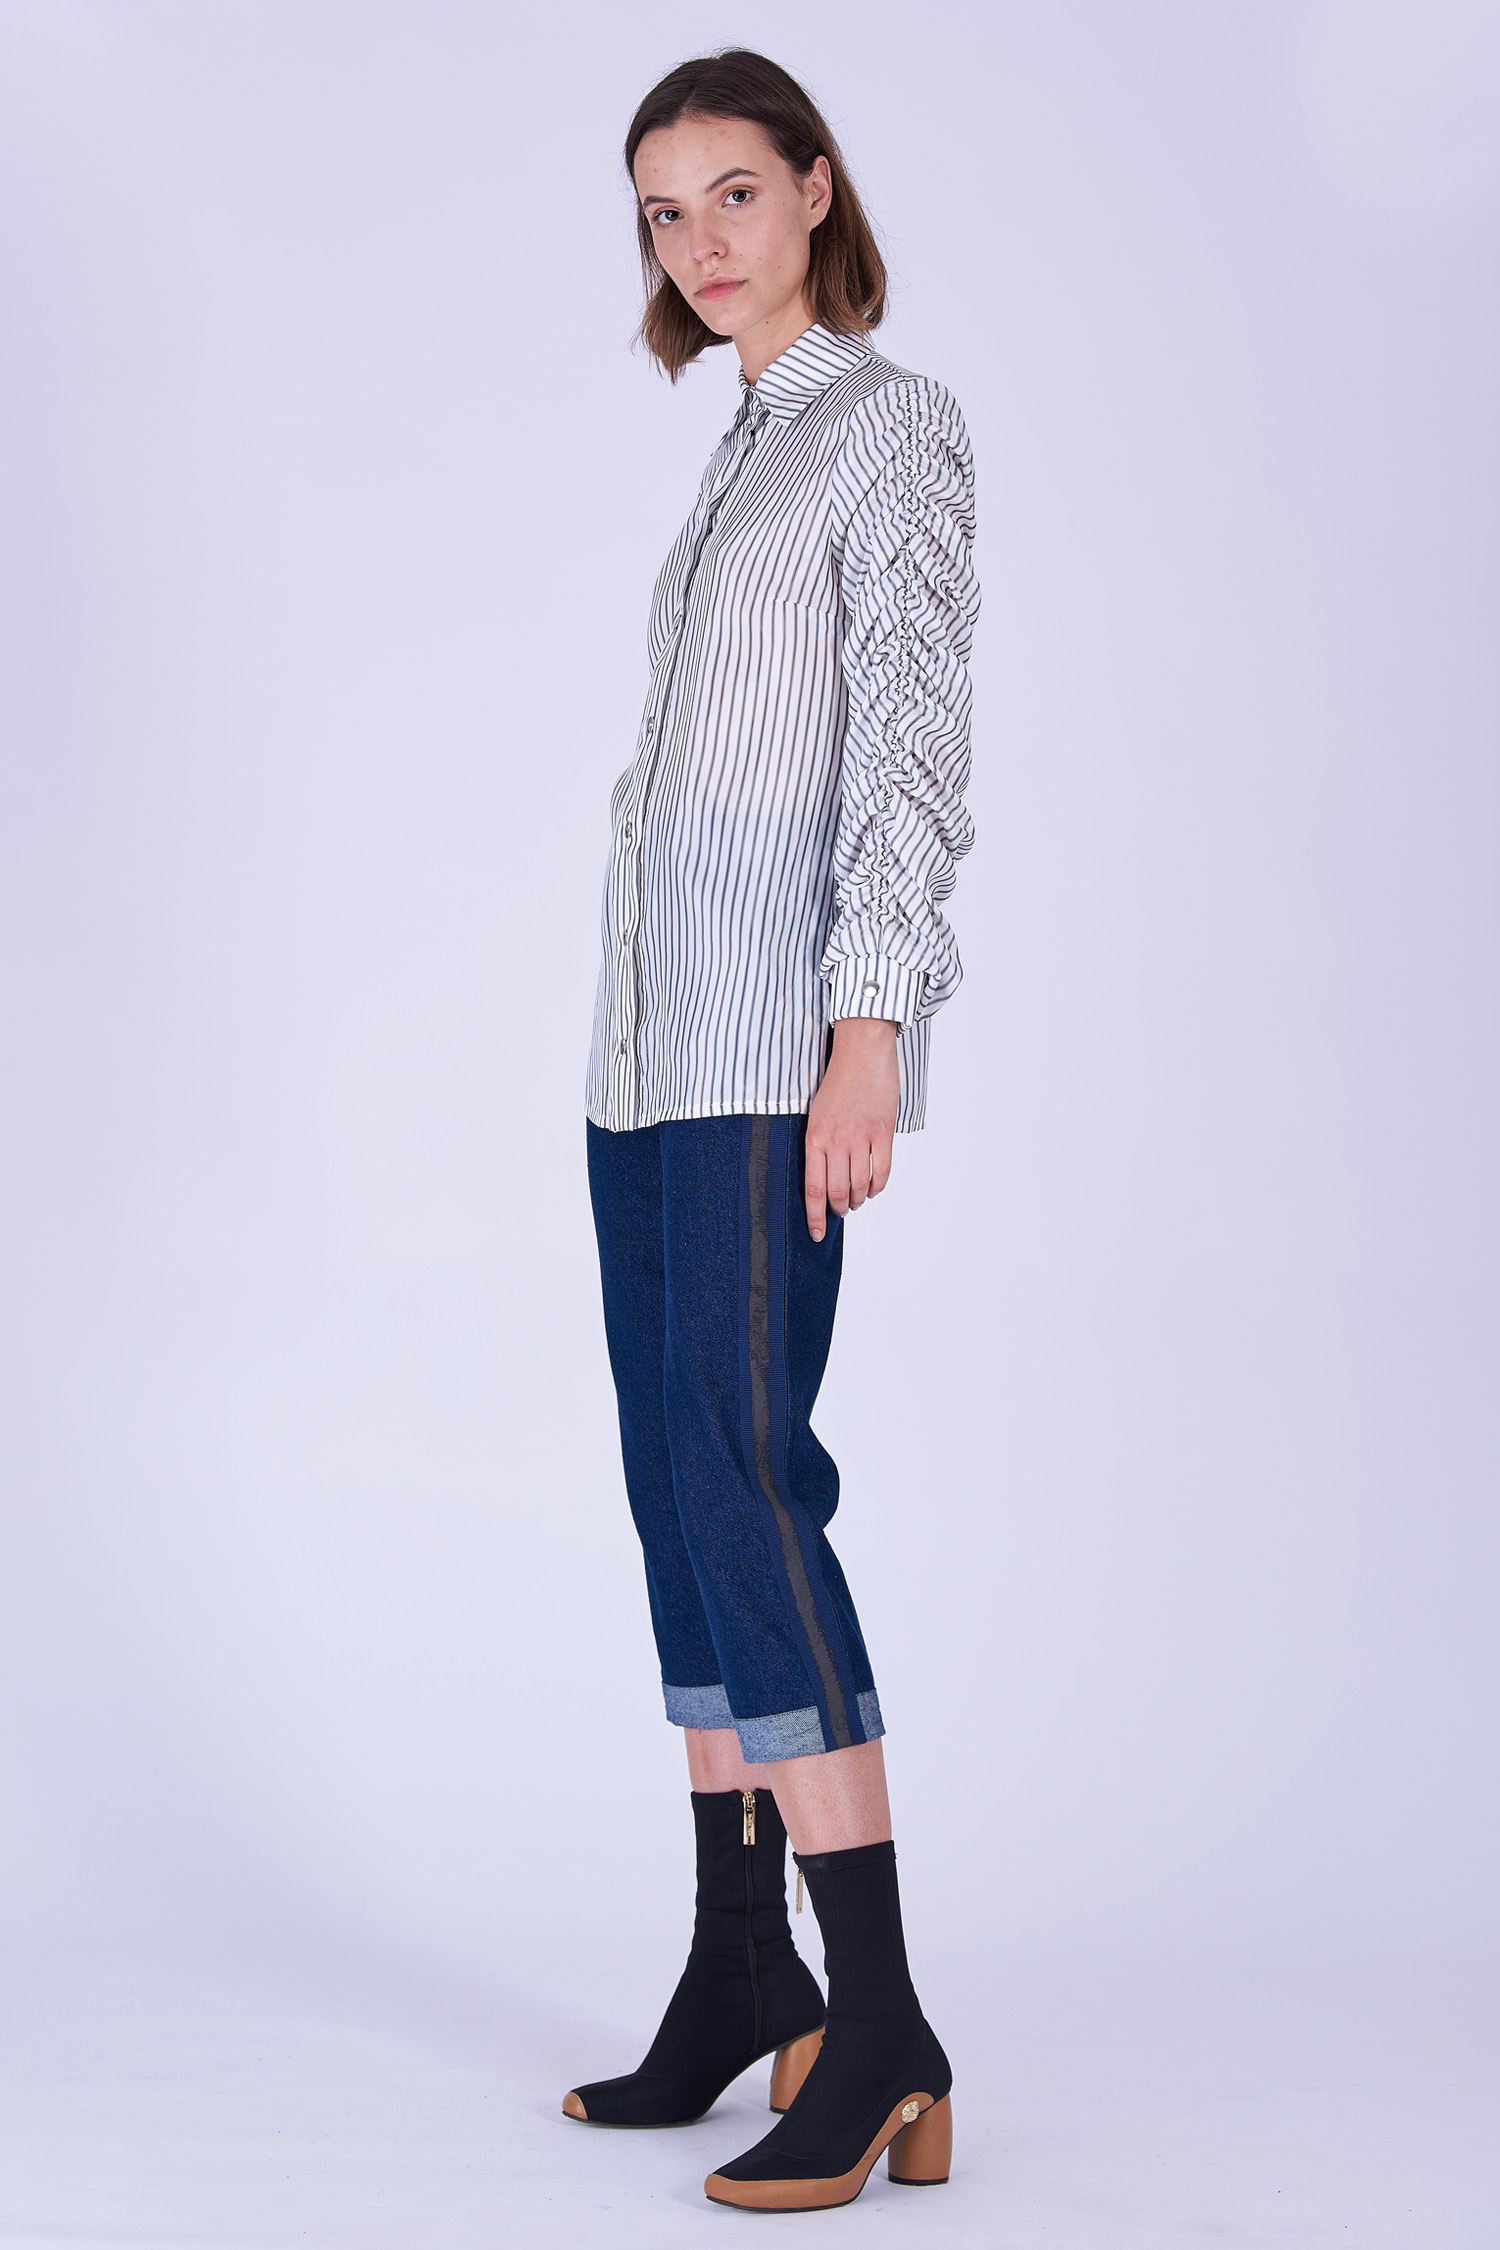 Acephala Fw19 20 White Striped Buttoned Shirt Biala Koszula Paski Side 1